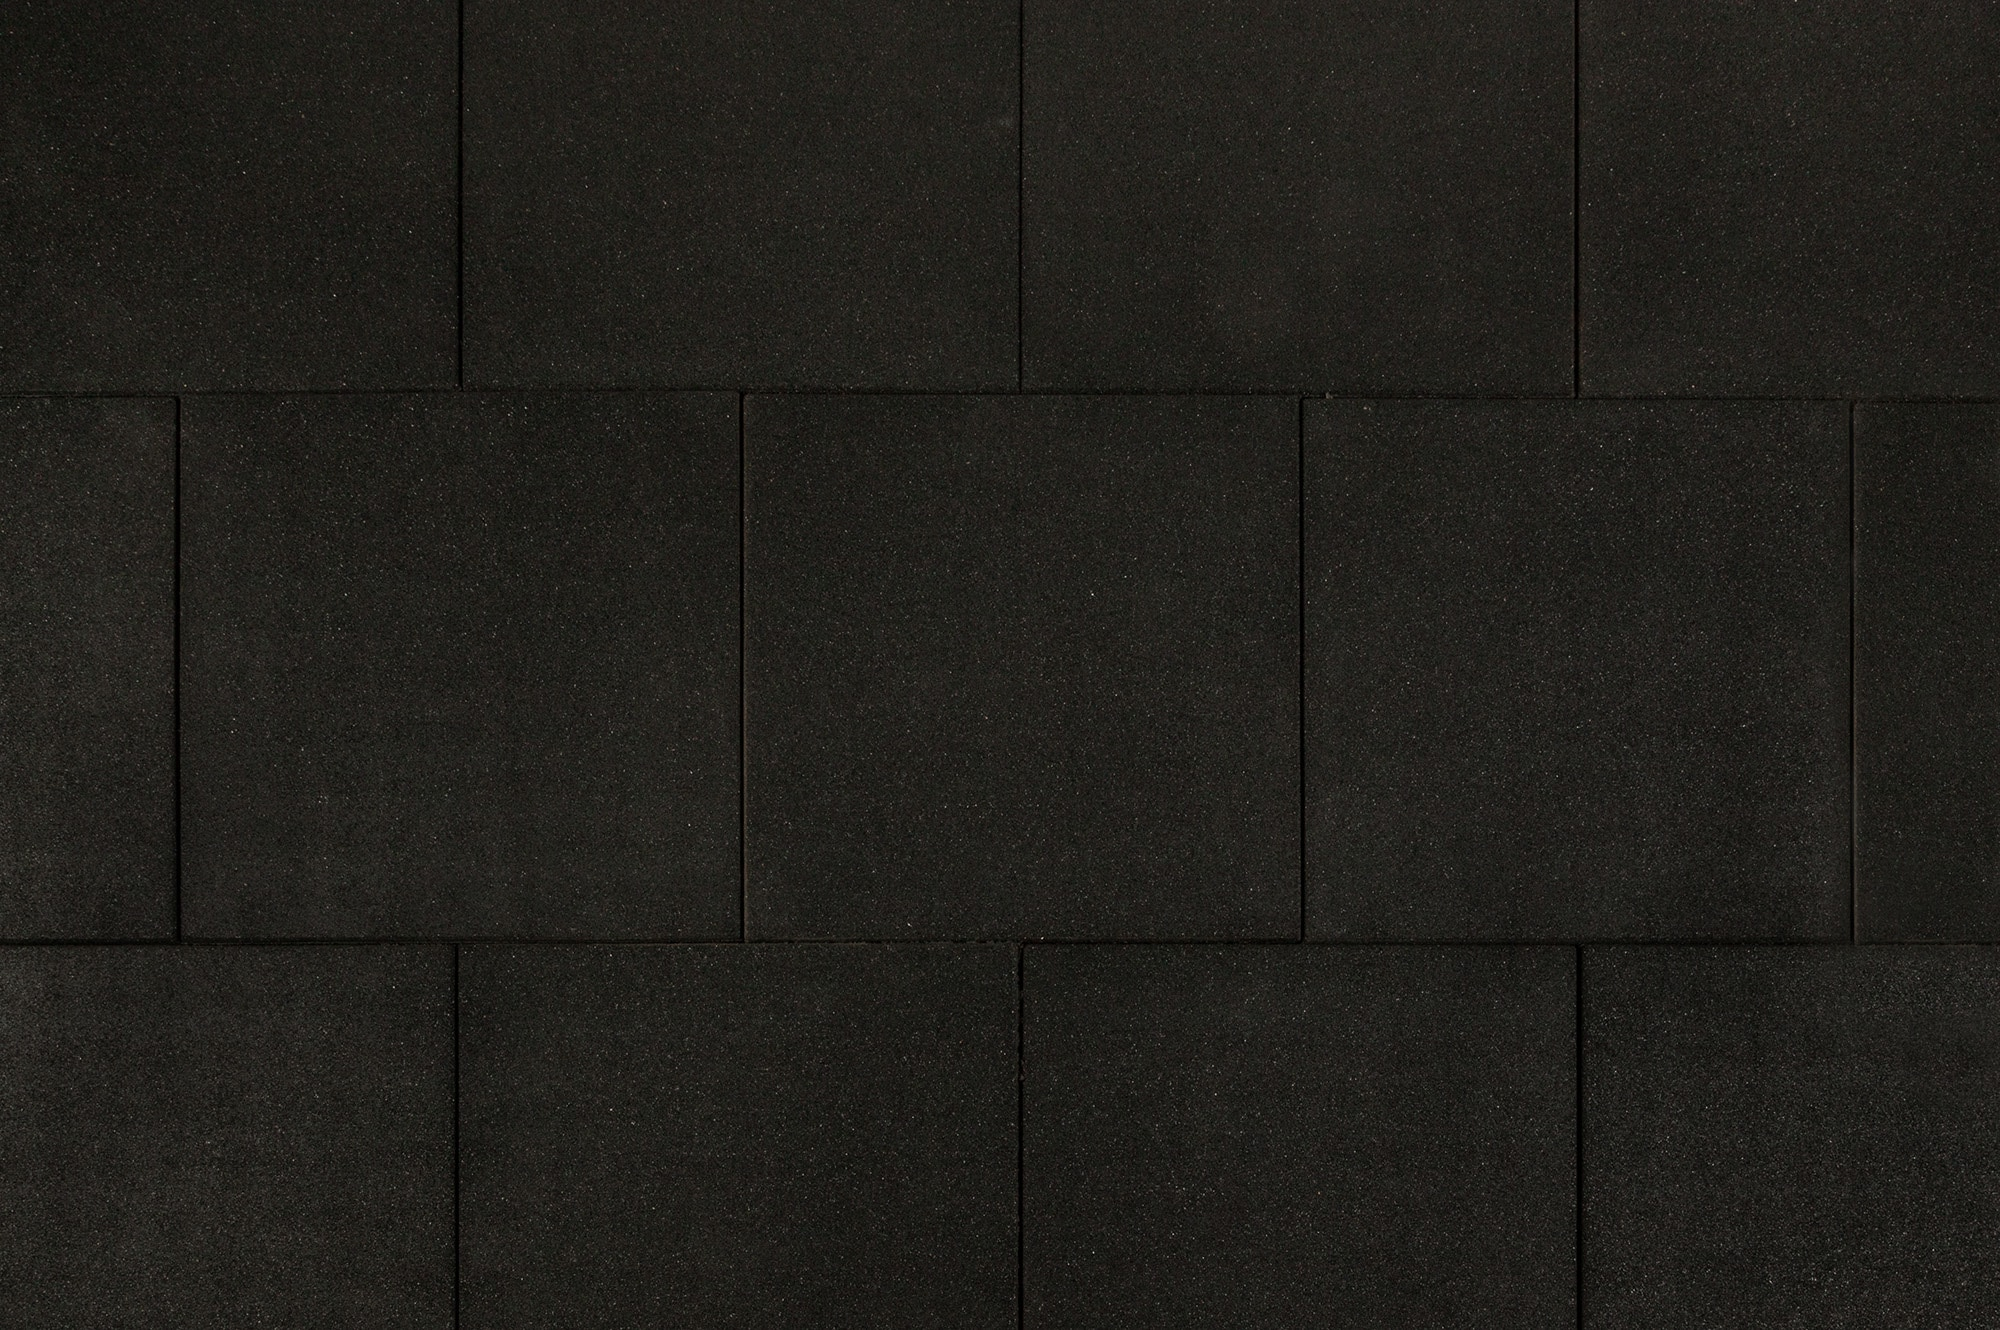 Free samples brava outdoor prestige rubber tiles 24x24x1 34 free samples brava outdoor prestige rubber tiles 24x24x1 34 rubber black dailygadgetfo Image collections